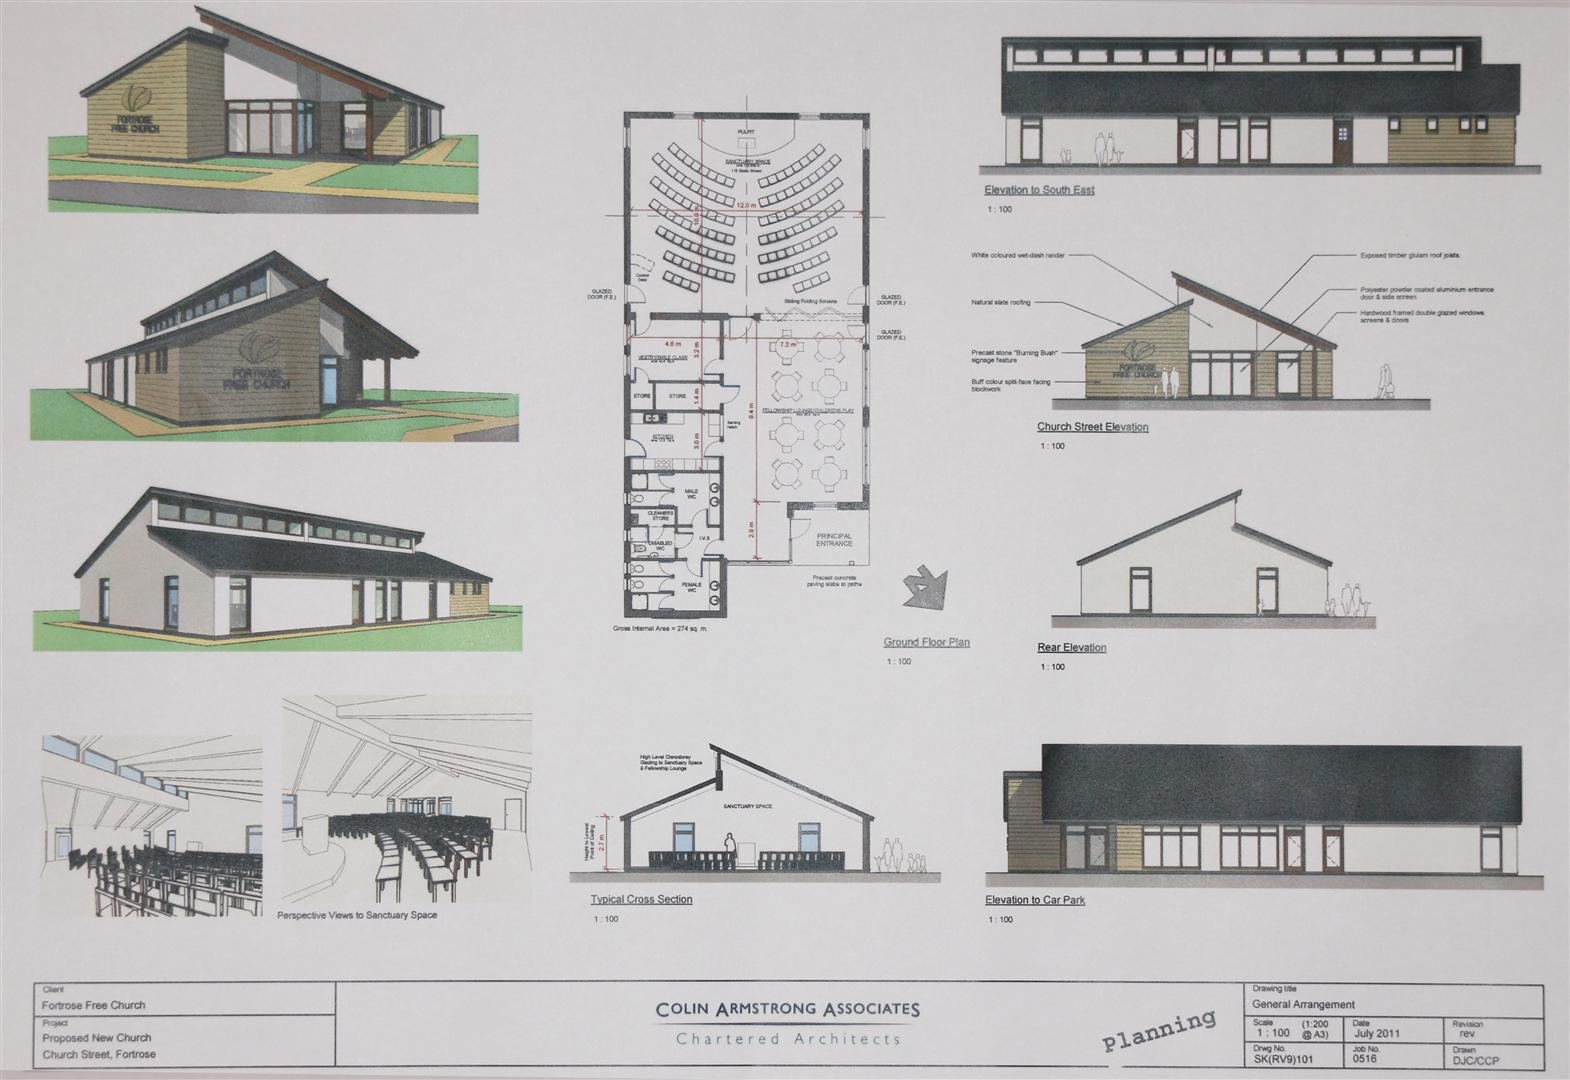 New build appeal fortrosefreechurchofscotland for New building design plan